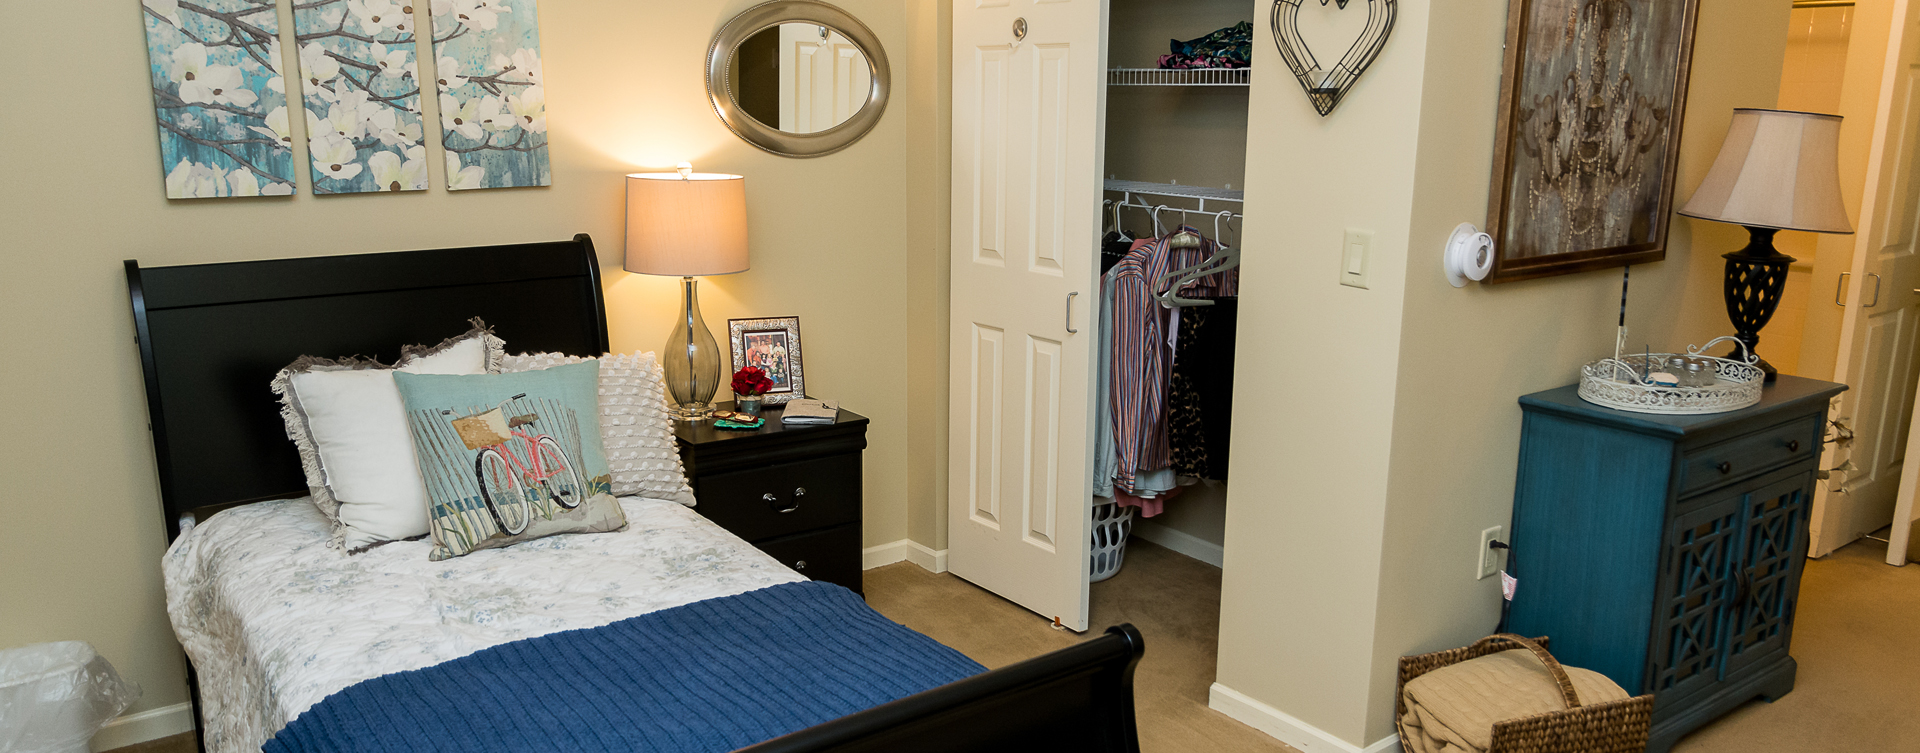 Get a new lease on life with a cozy apartment at Bickford of Oswego